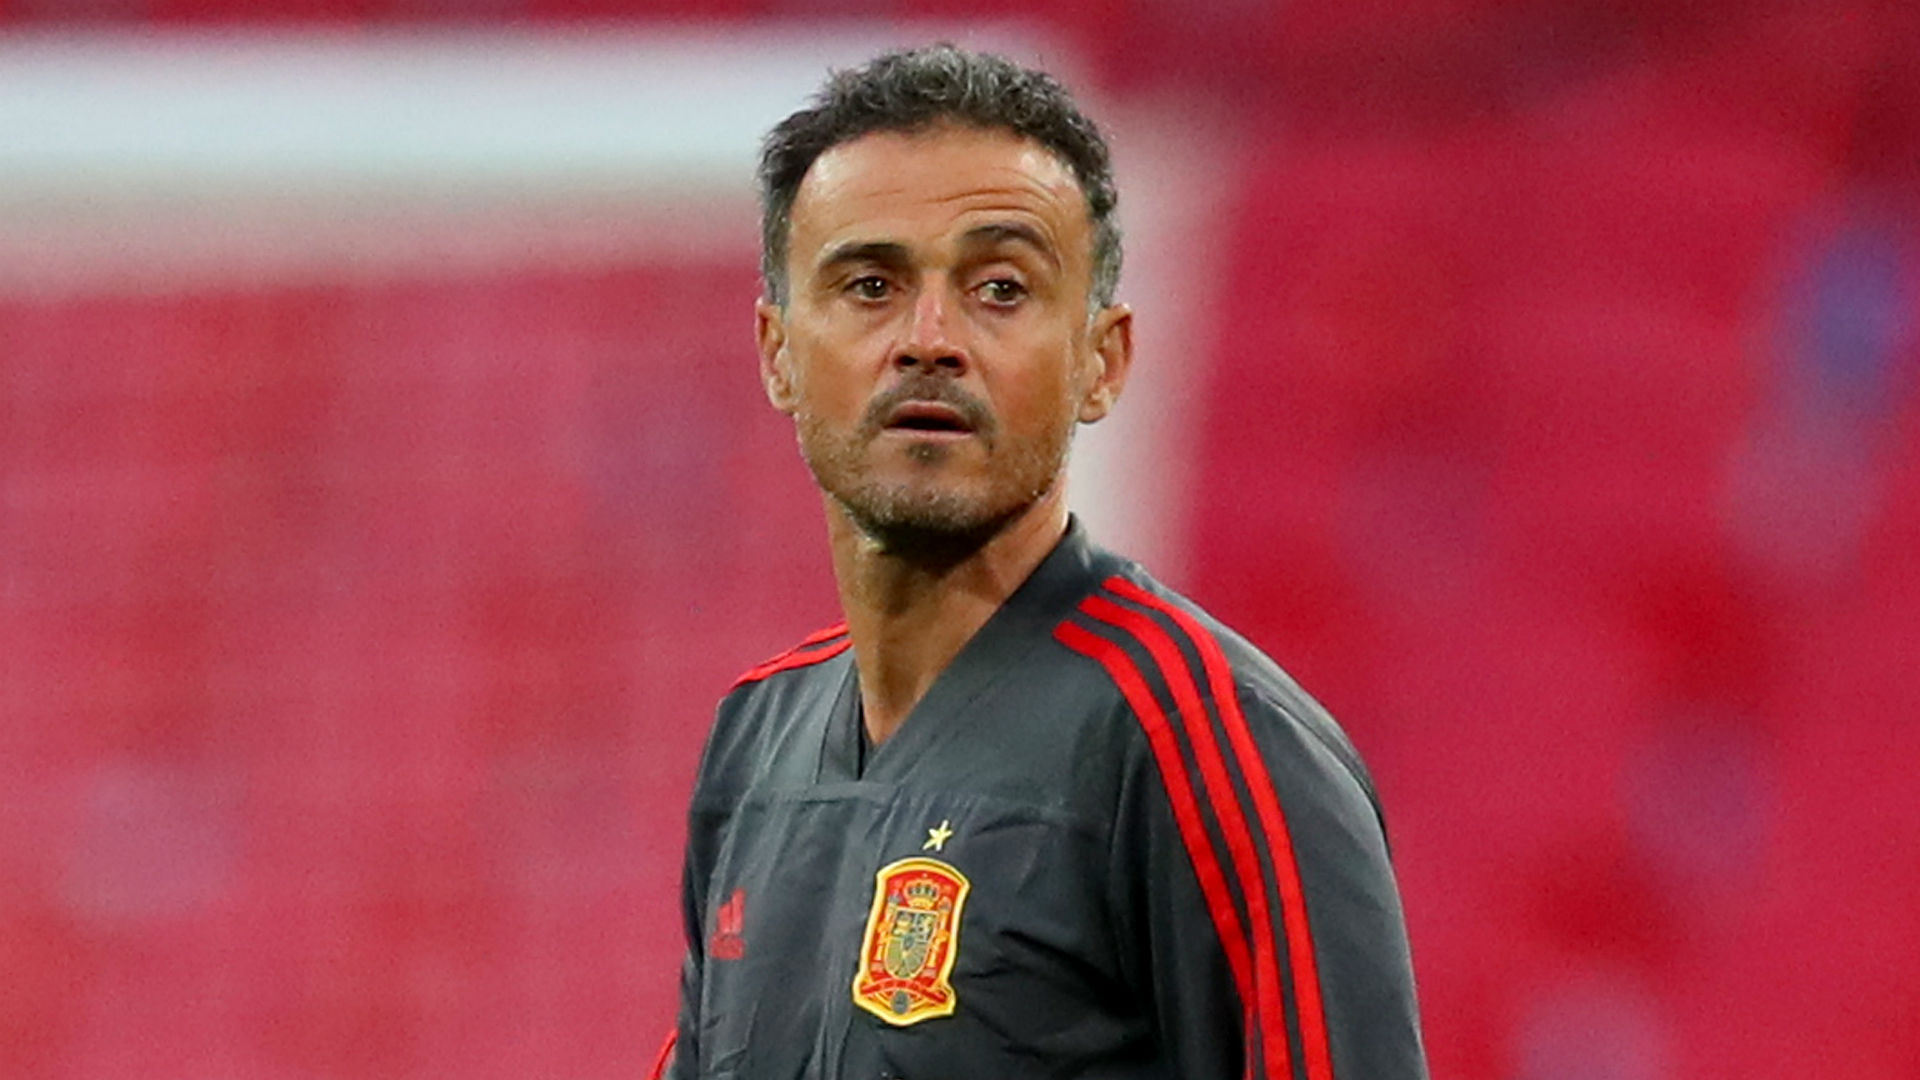 Luis Enrique to miss Spain game 'for family reasons'